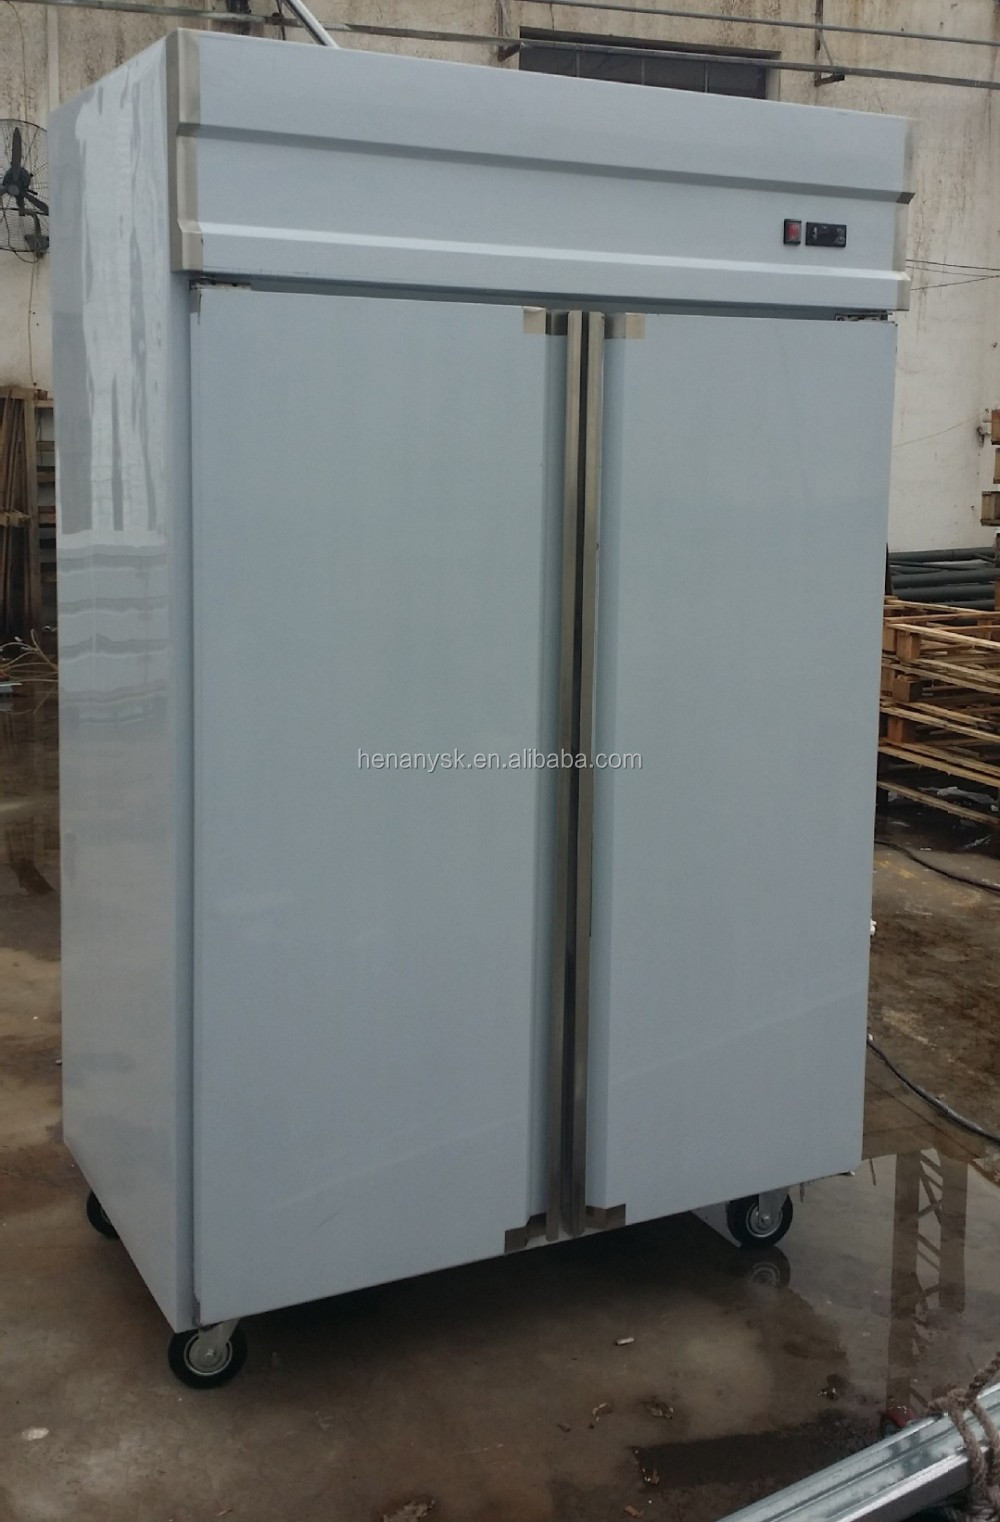 IS-1.6LG3 commerical freeezer at -5~-18 C 3 big Doors vertical kitchen Freezer cooler refrigerator